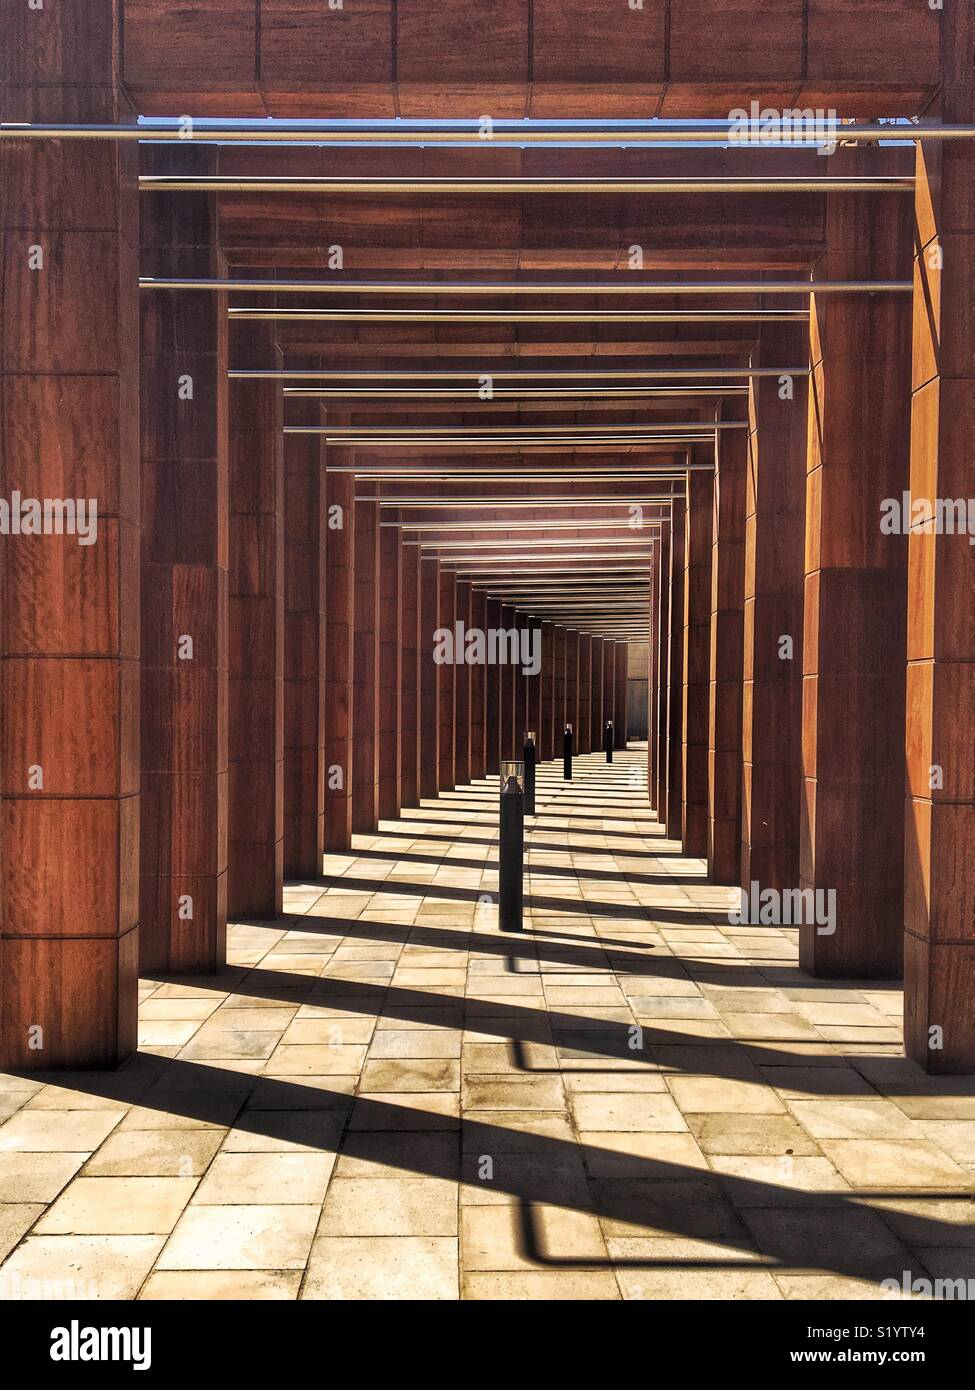 Lines and shadows - Stock Image